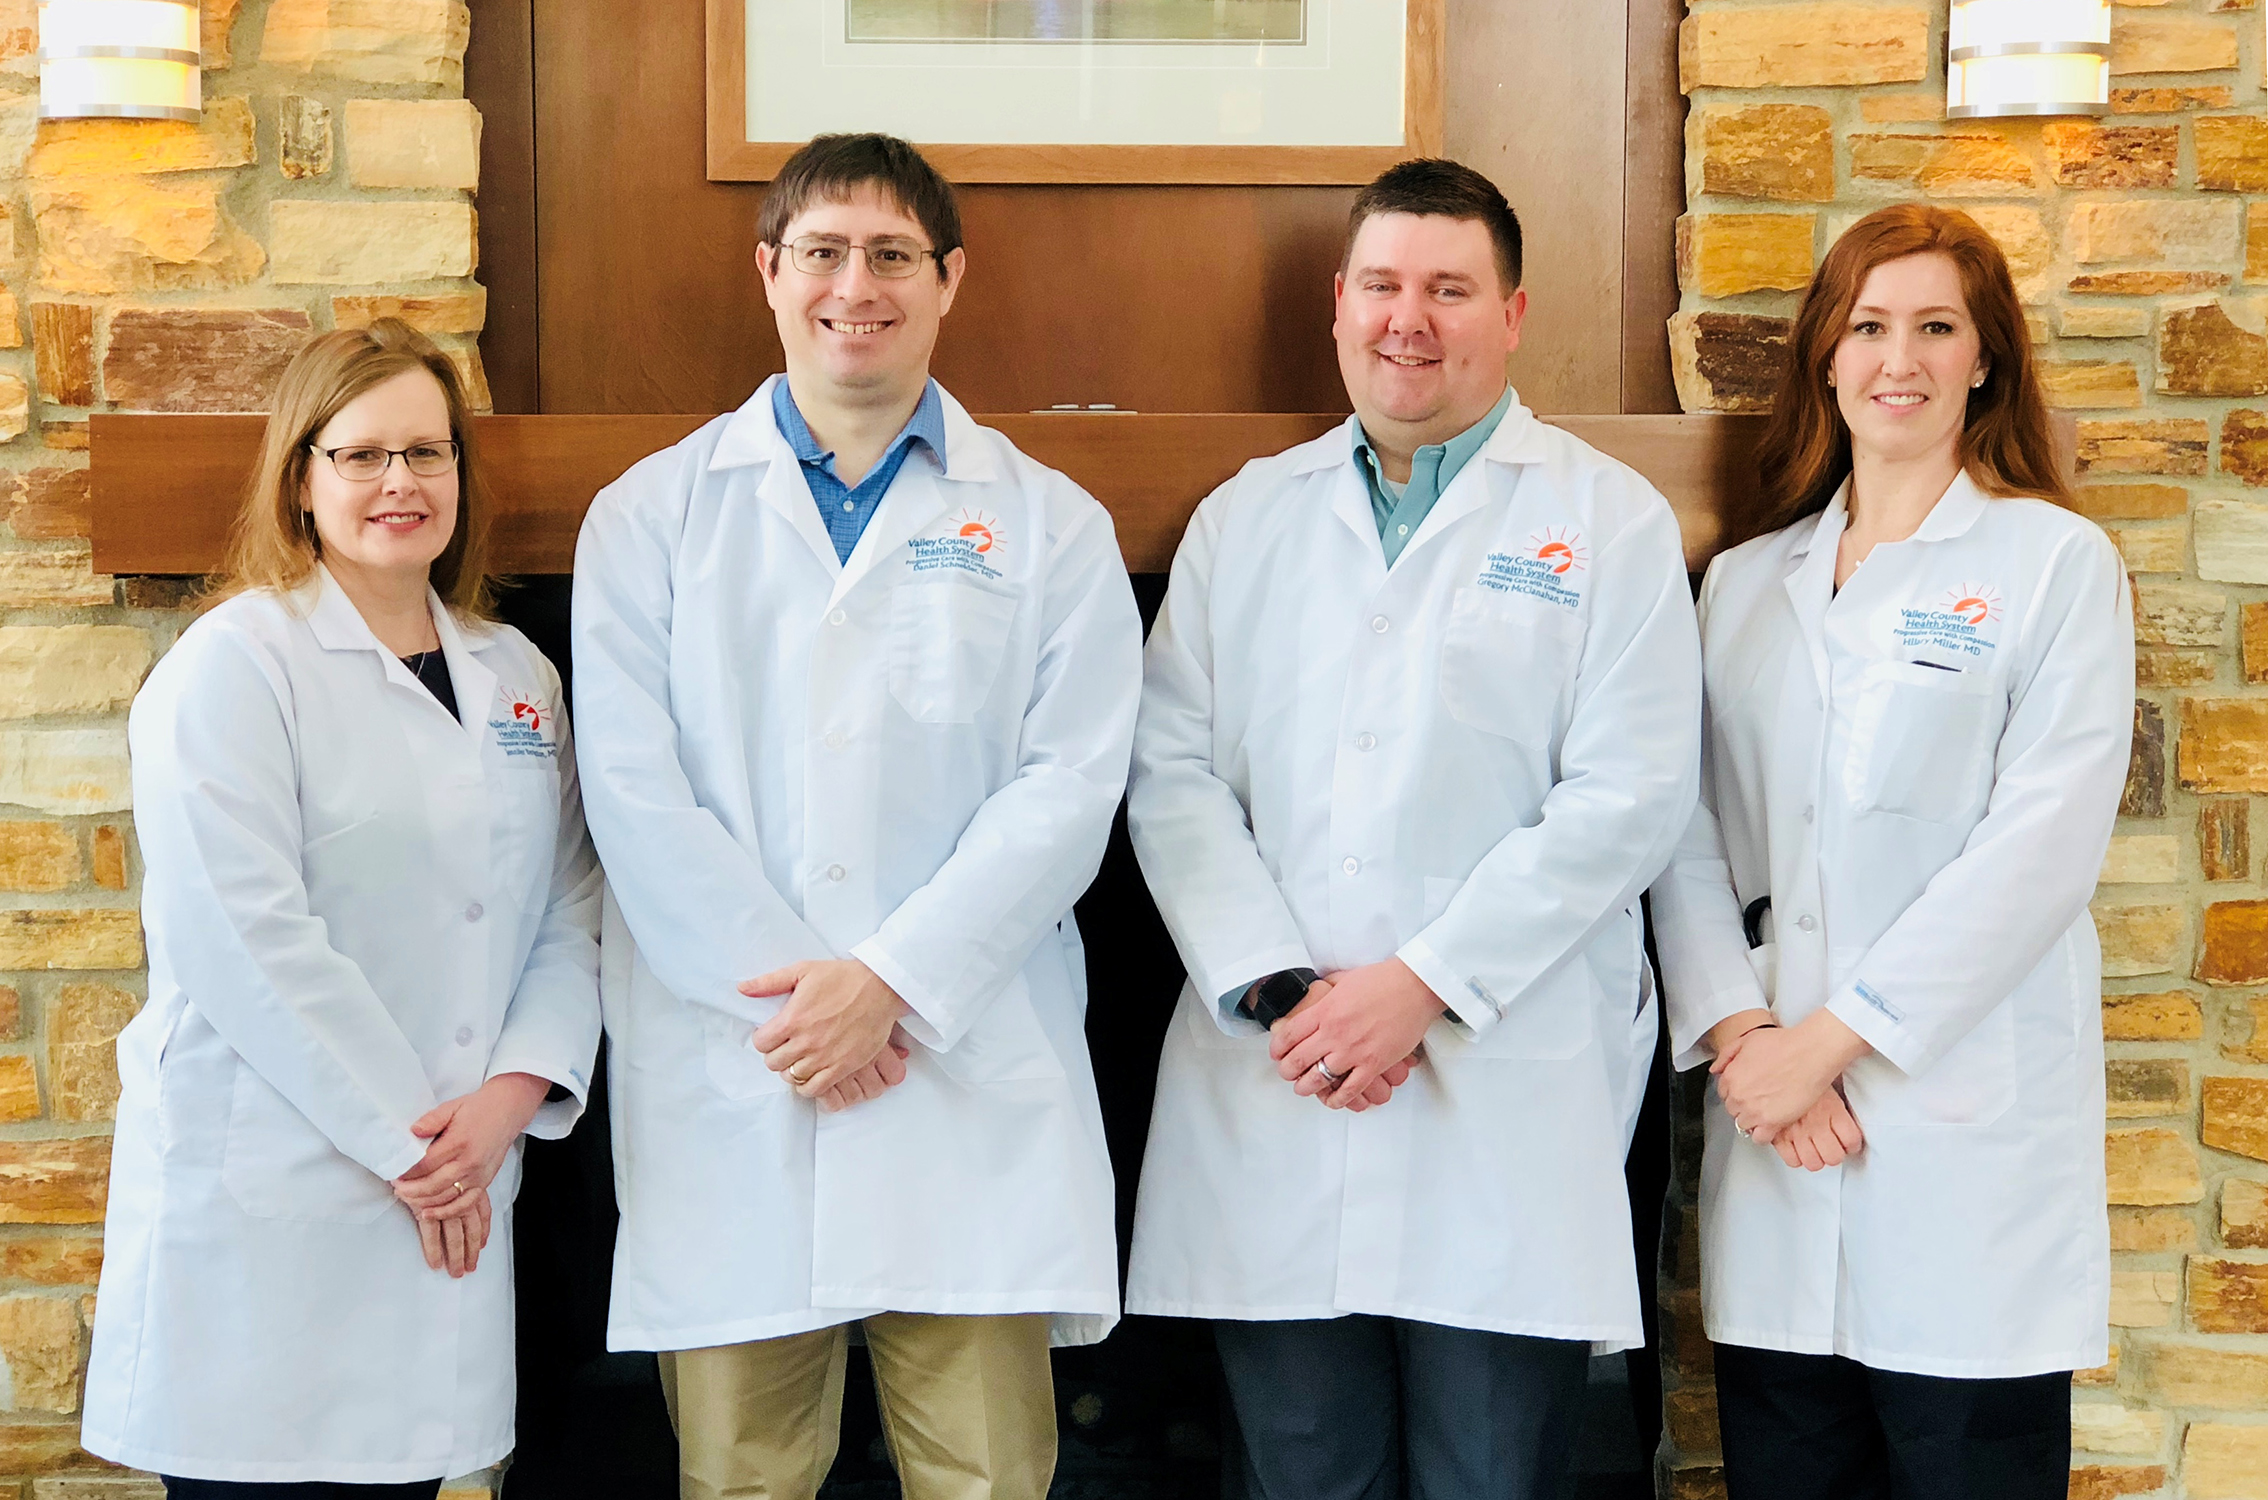 VCHS Ranks Amongst Top 25 Percent Rural Hospitals Nationally for Quality